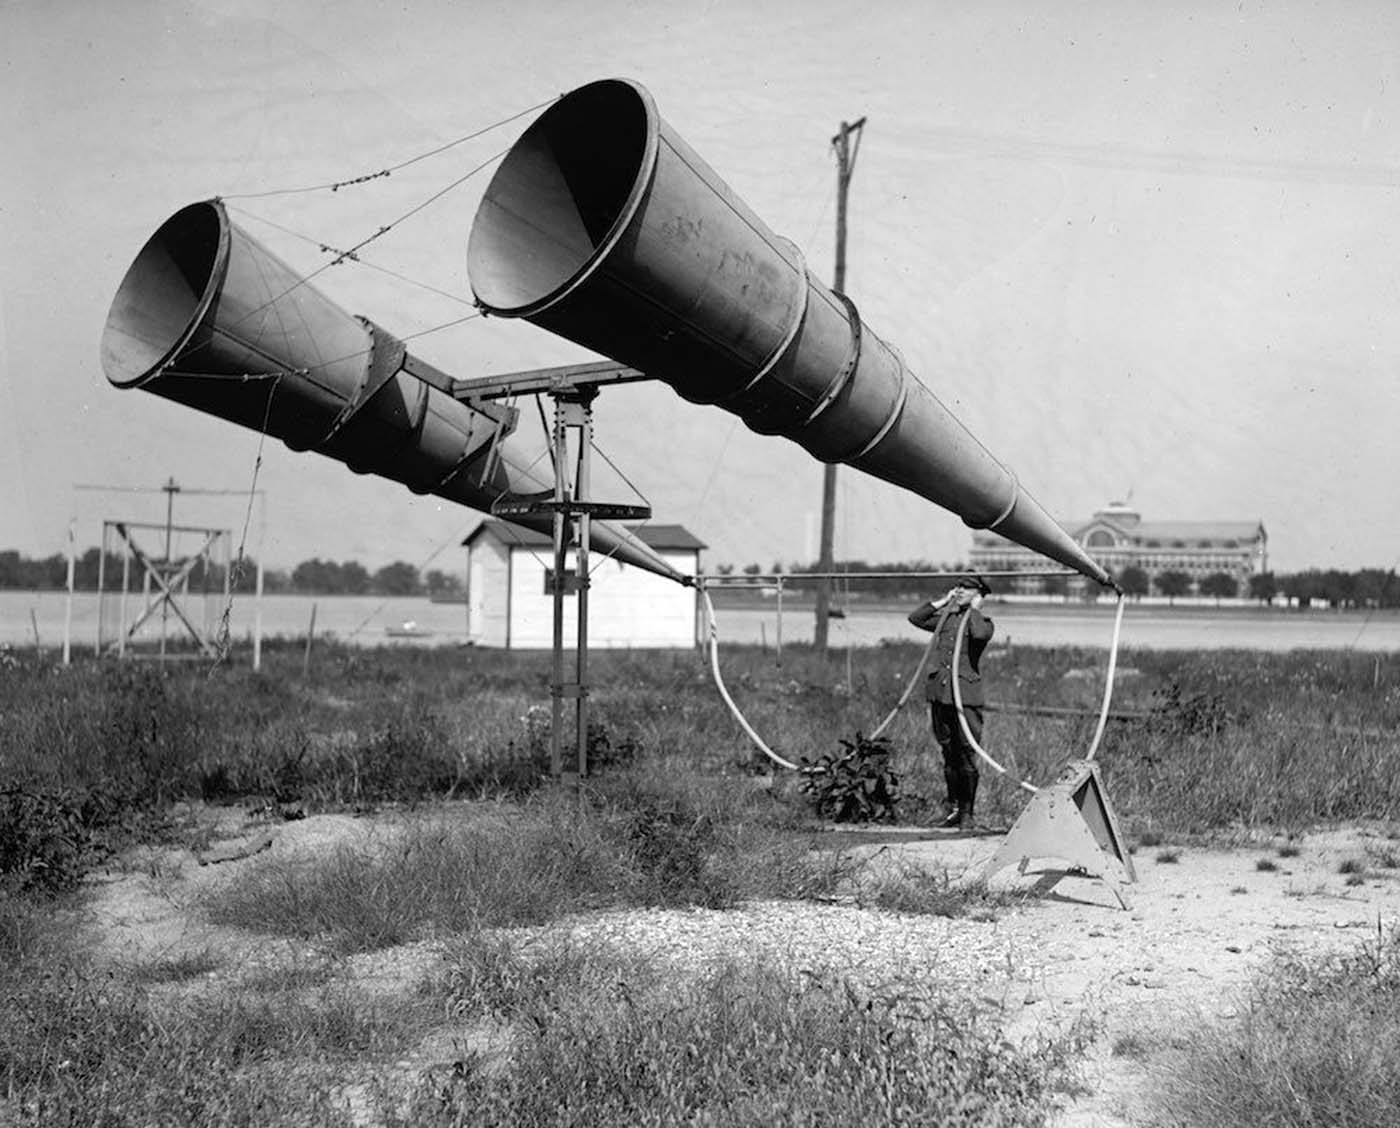 42-aircraft-detection-before-the-invention-of-the-radar-c-1917